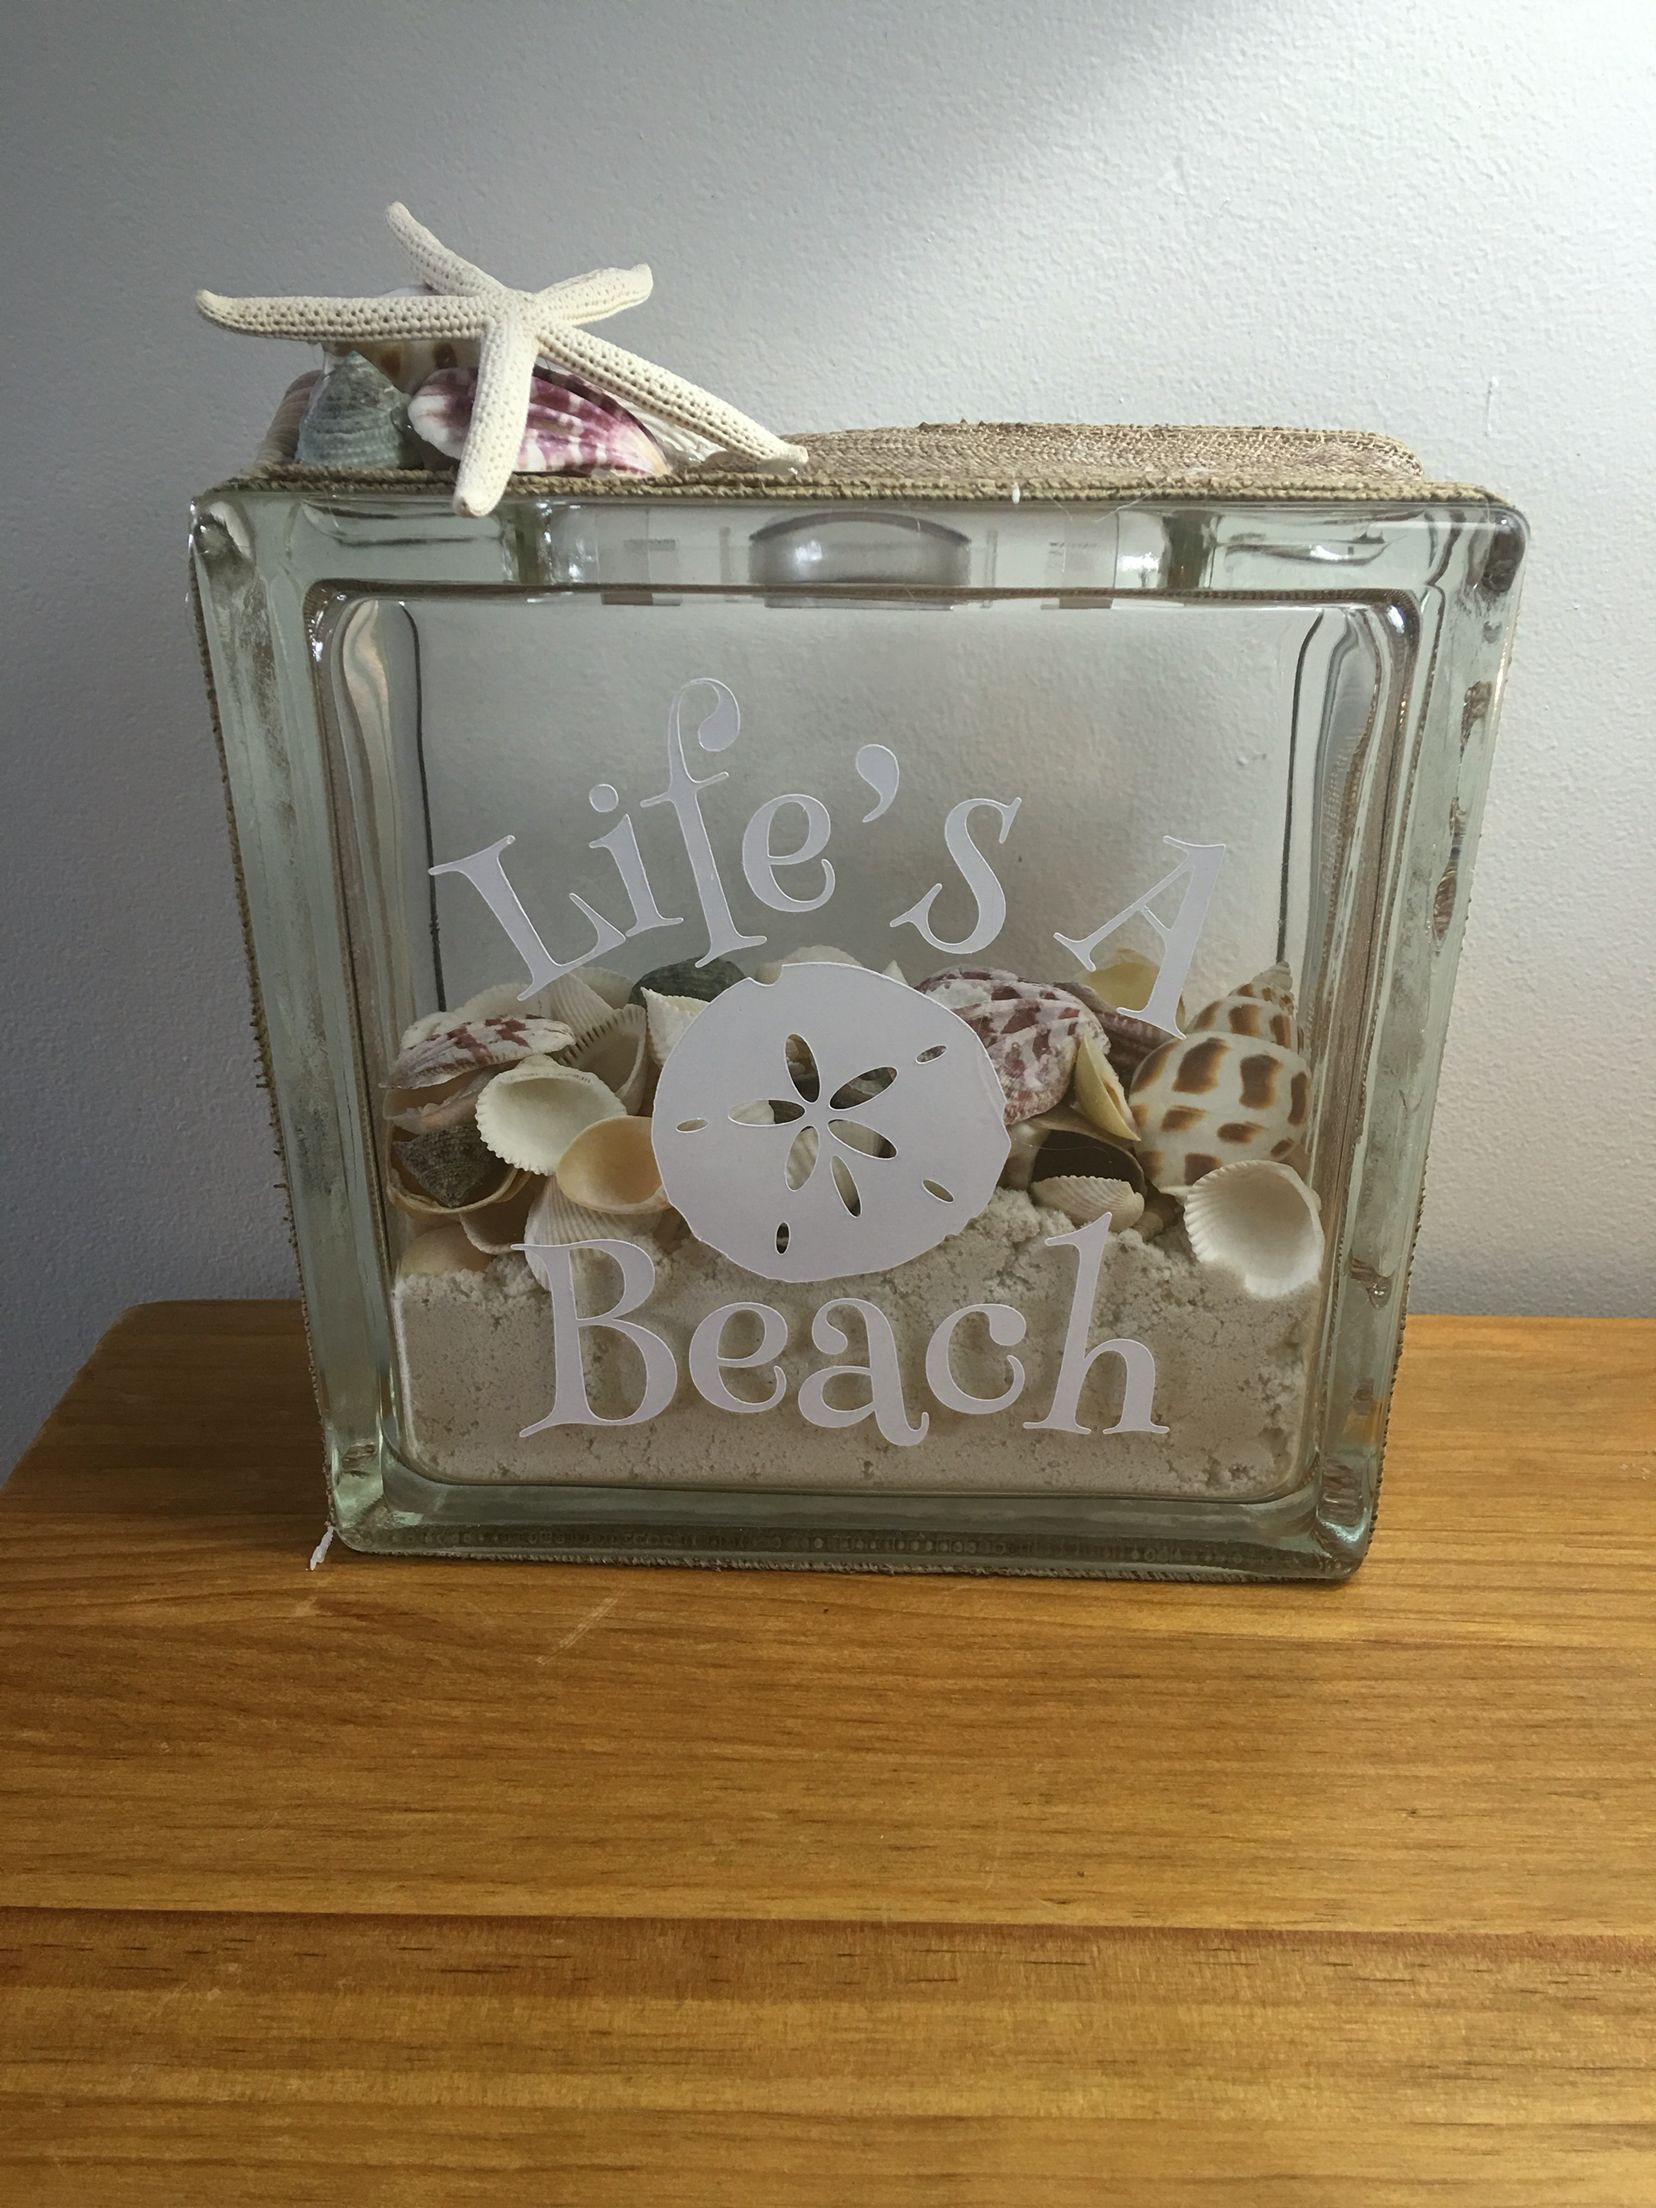 Deco Block Ideas Life 39s A Beach Glass Block Christmas Pinterest